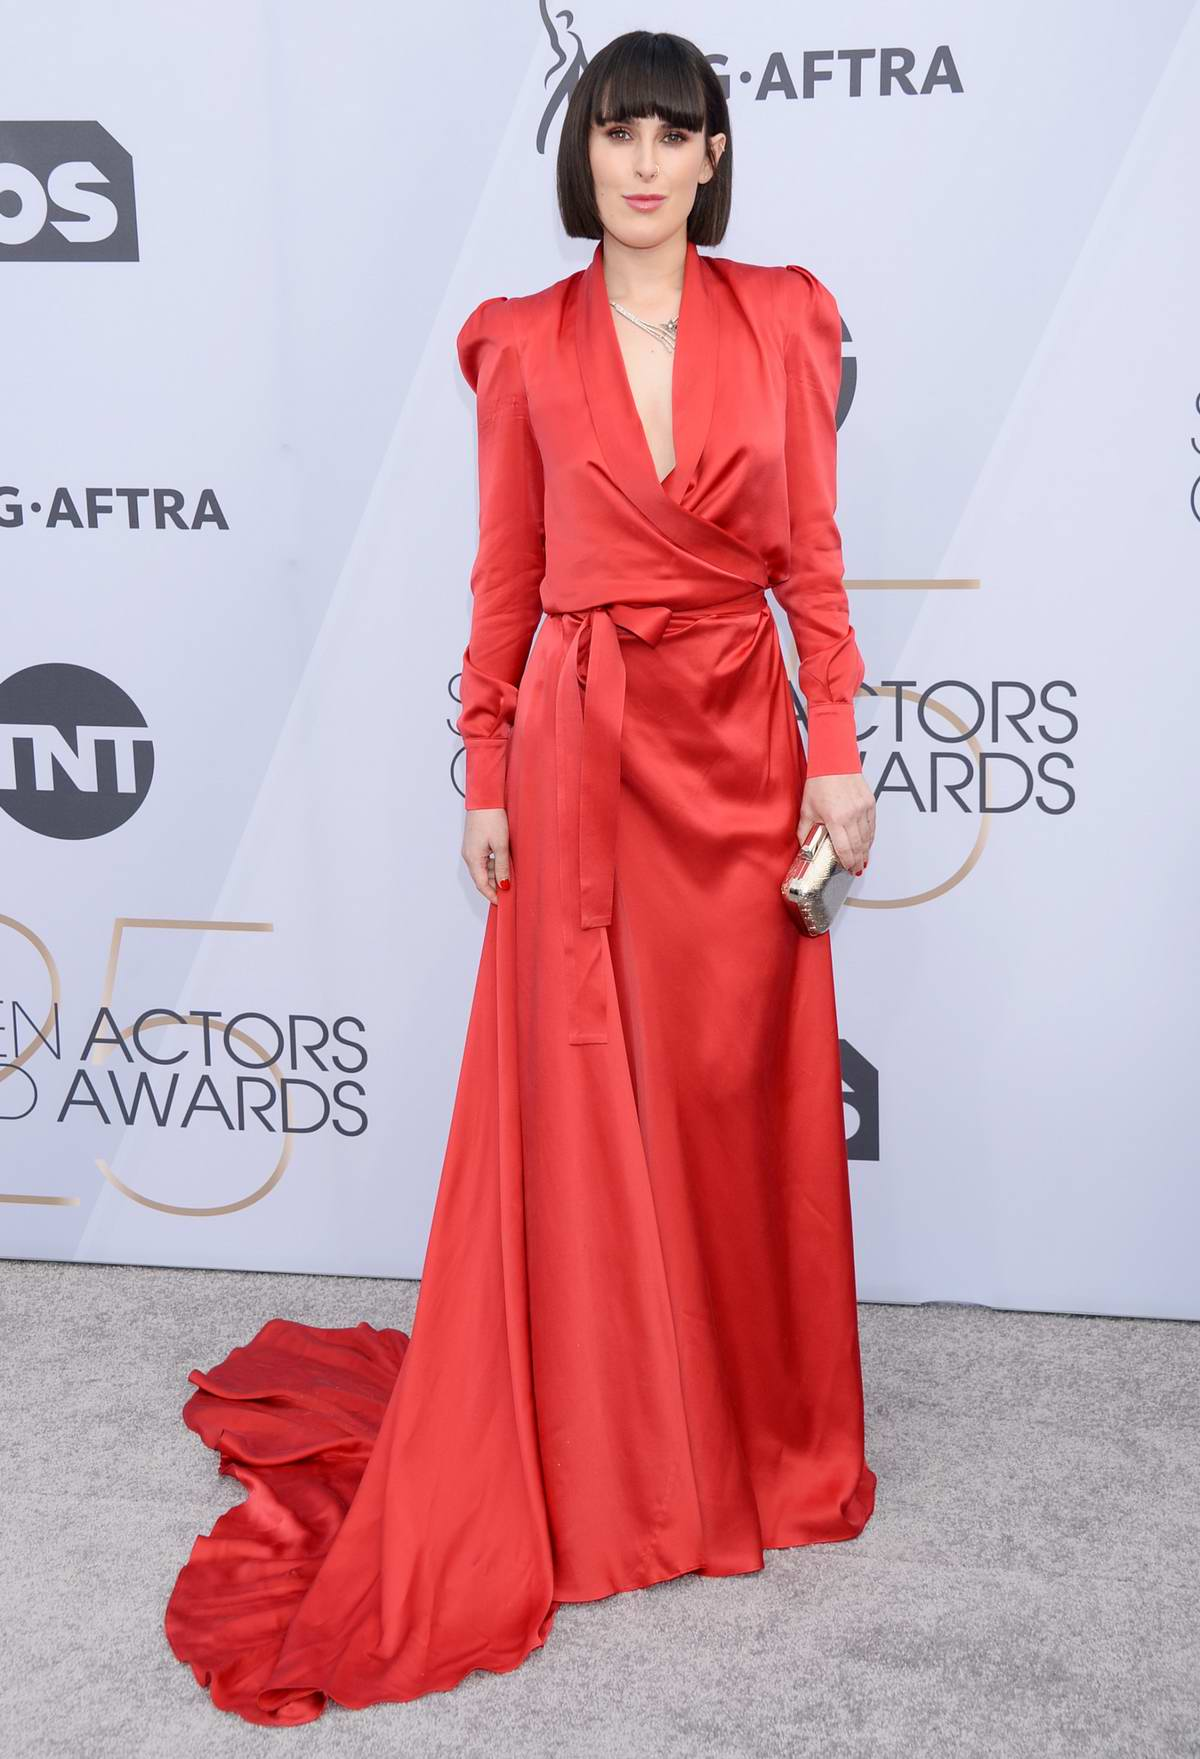 Rumer Willis attends the 25th Annual Screen Actors Guild Awards (SAG 2019) at the Shrine Auditorium in Los Angeles